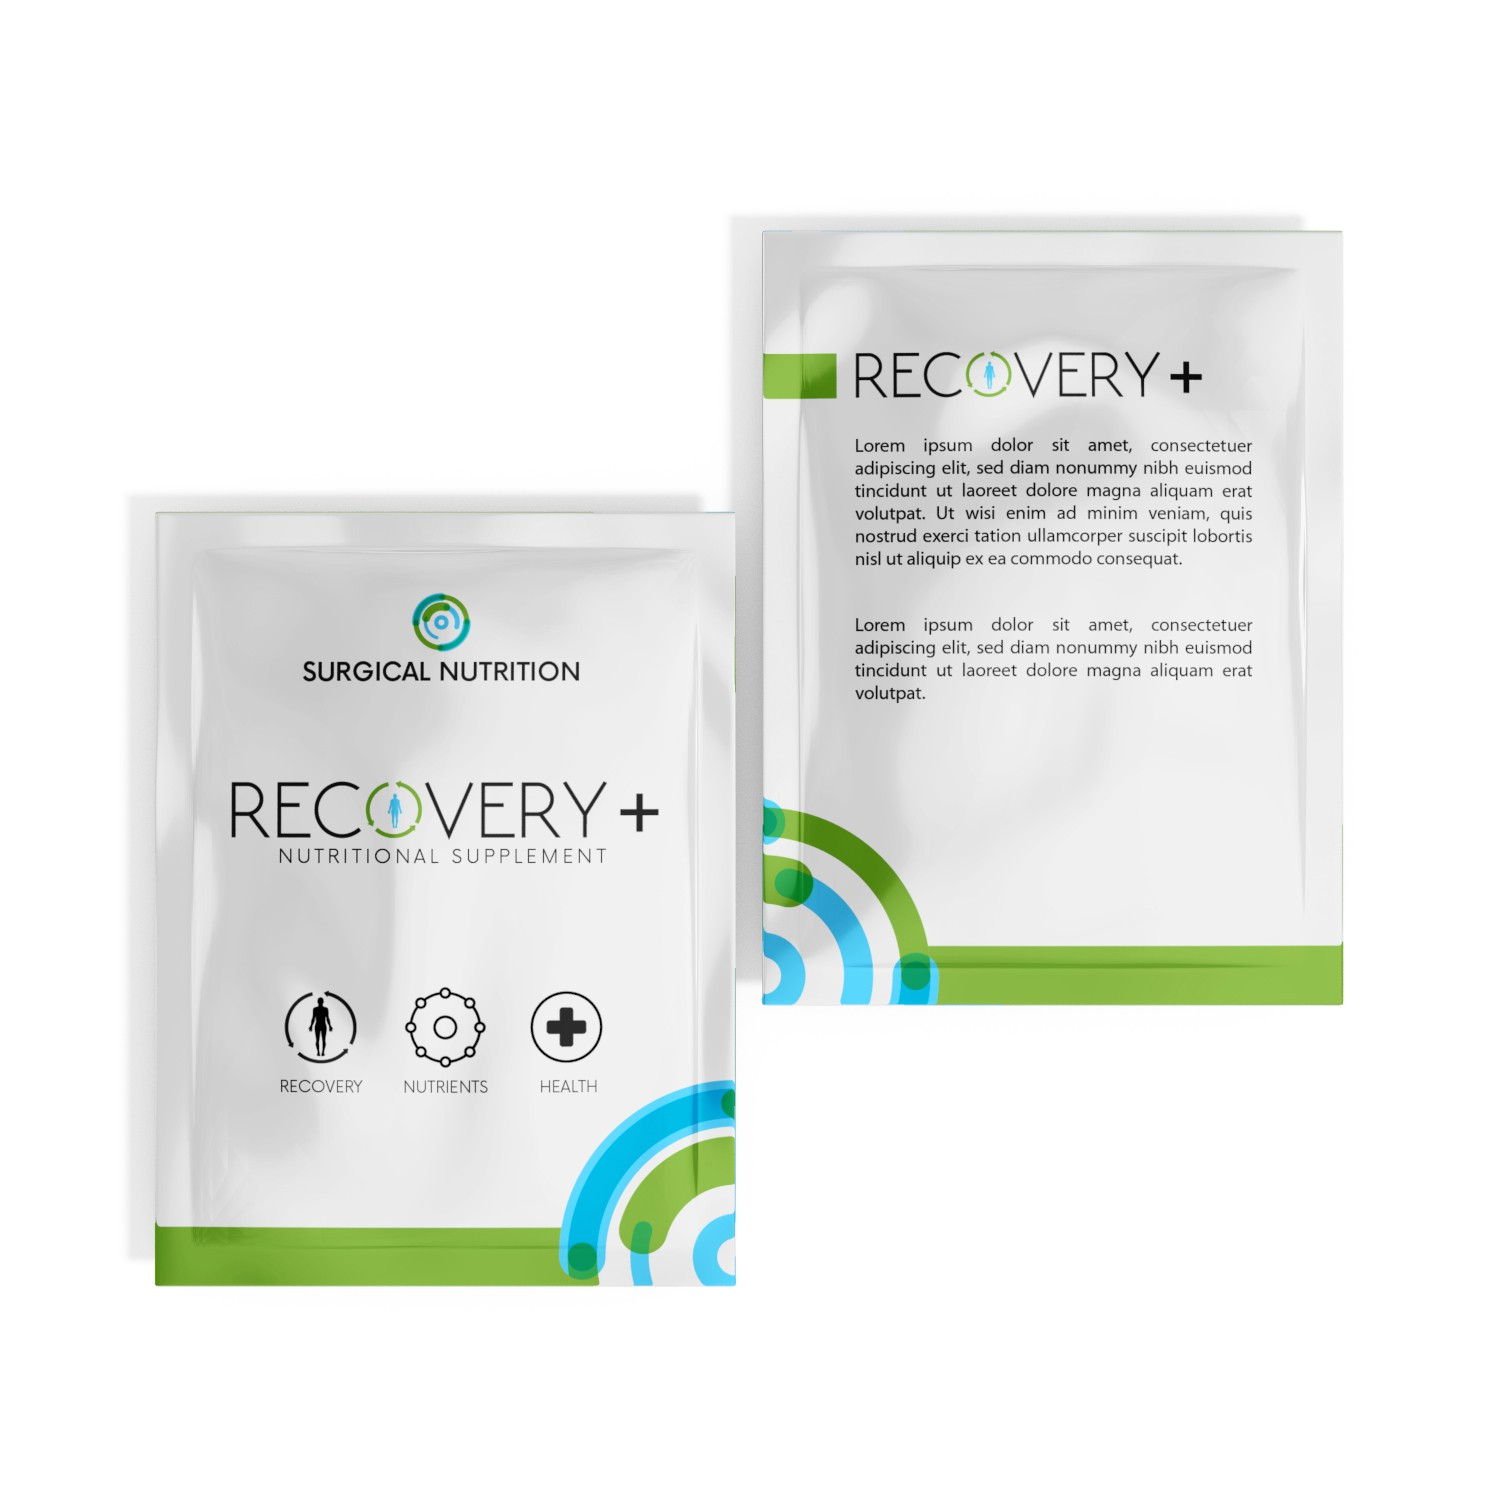 Surgery Recovery Product Needs Creative Packaging Design